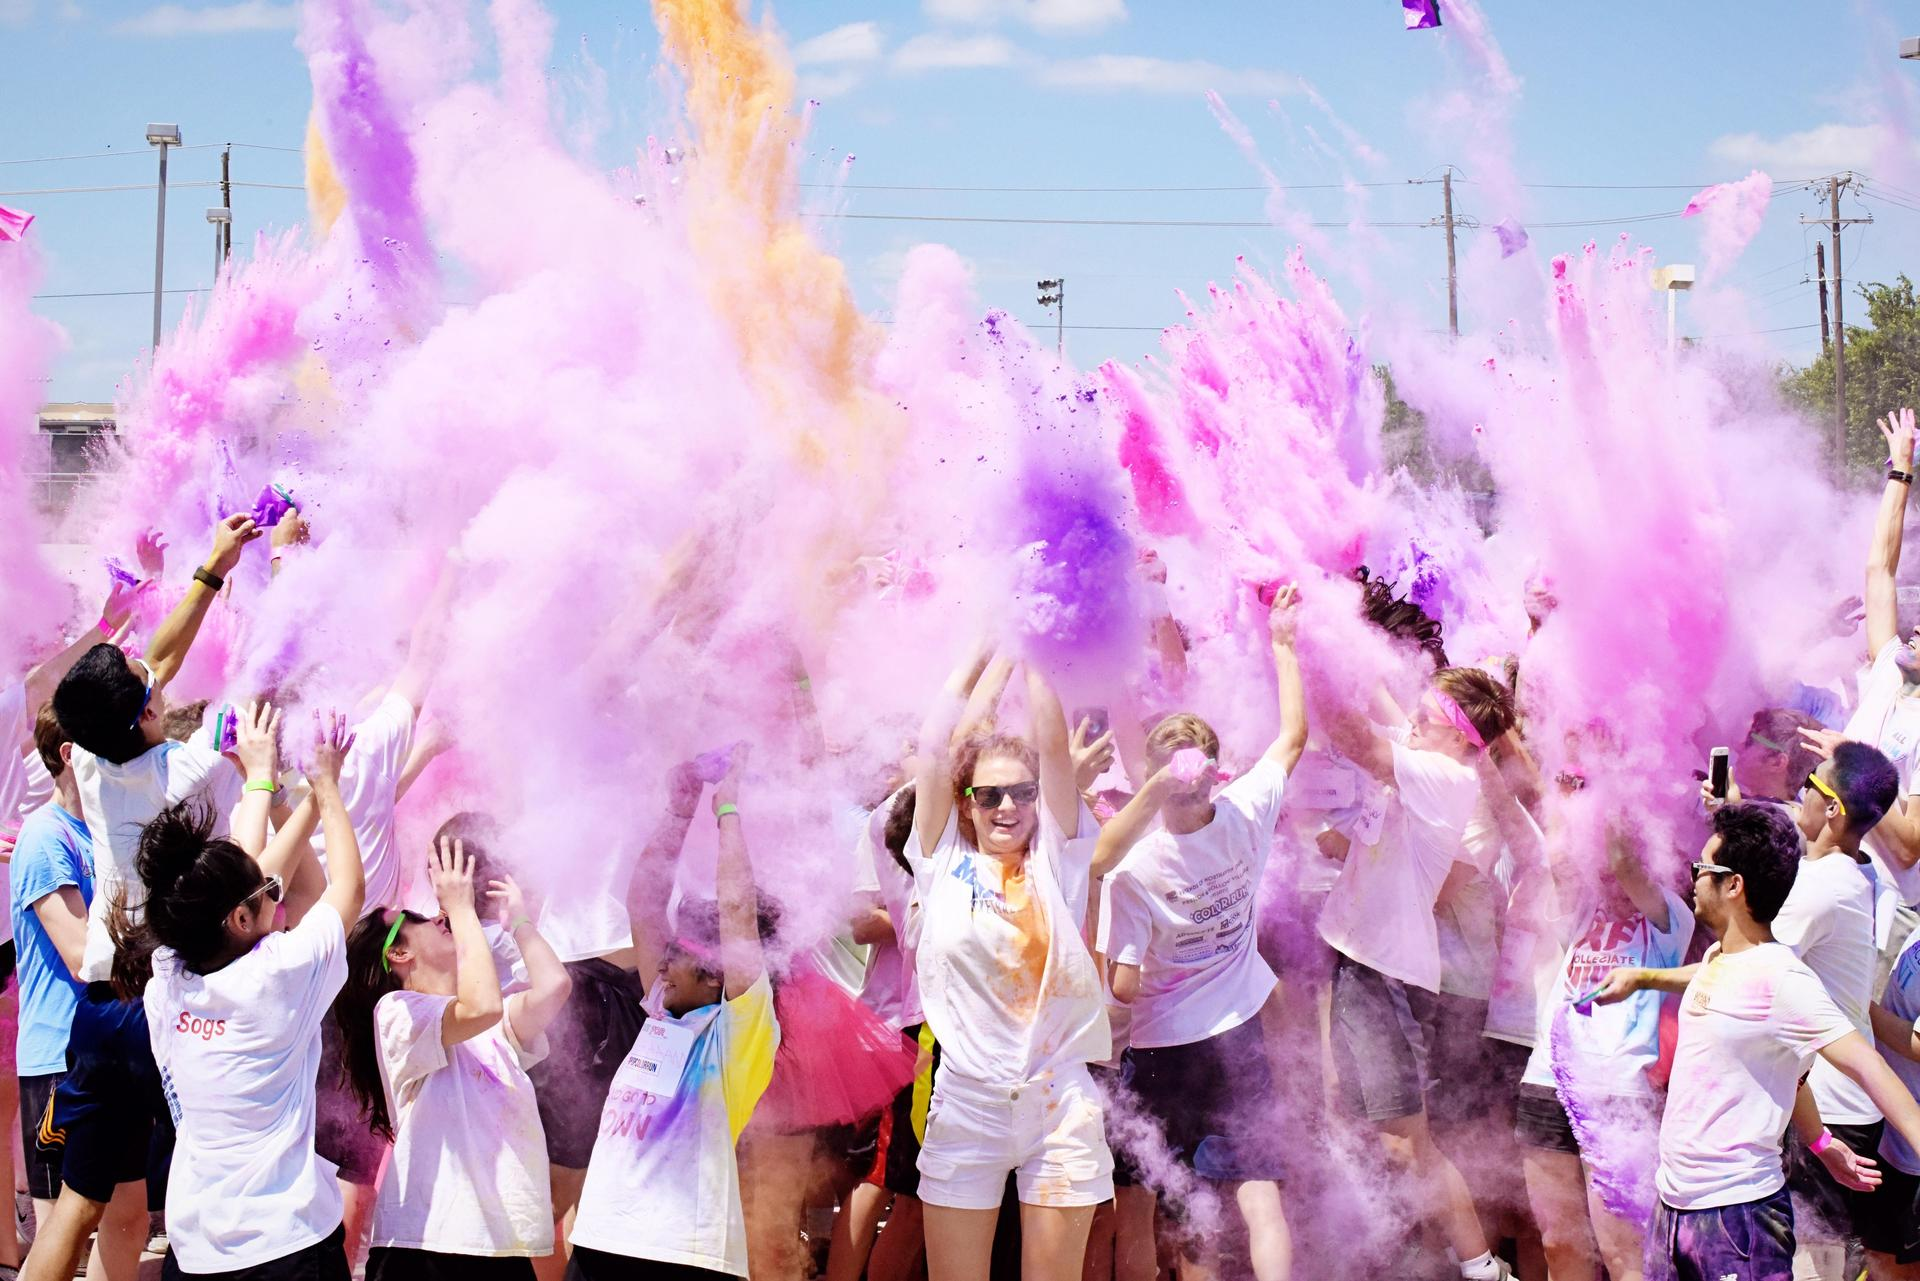 Upper private school students celebrating during color run